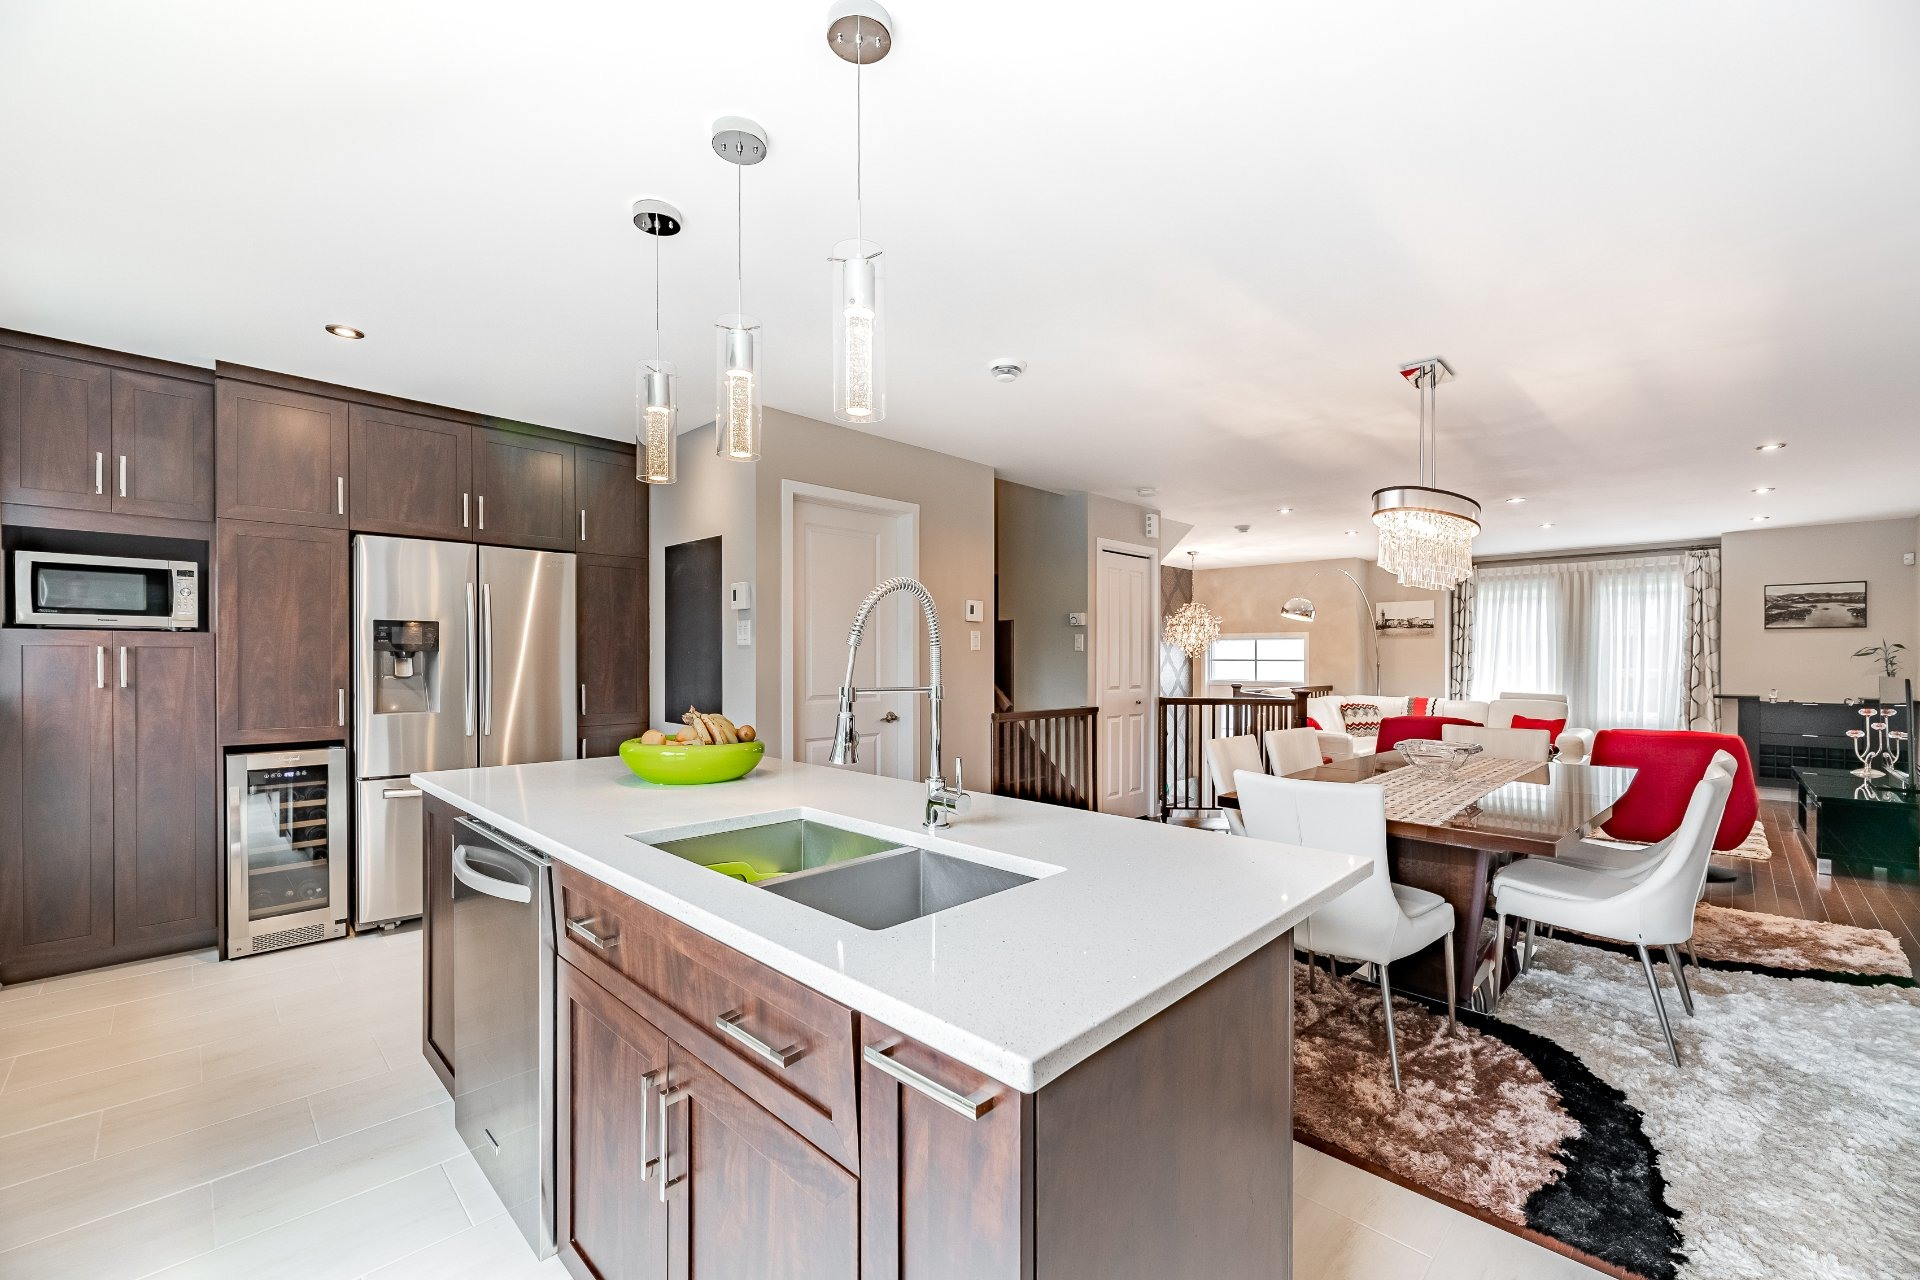 image 9 - House For sale Duvernay Laval  - 8 rooms